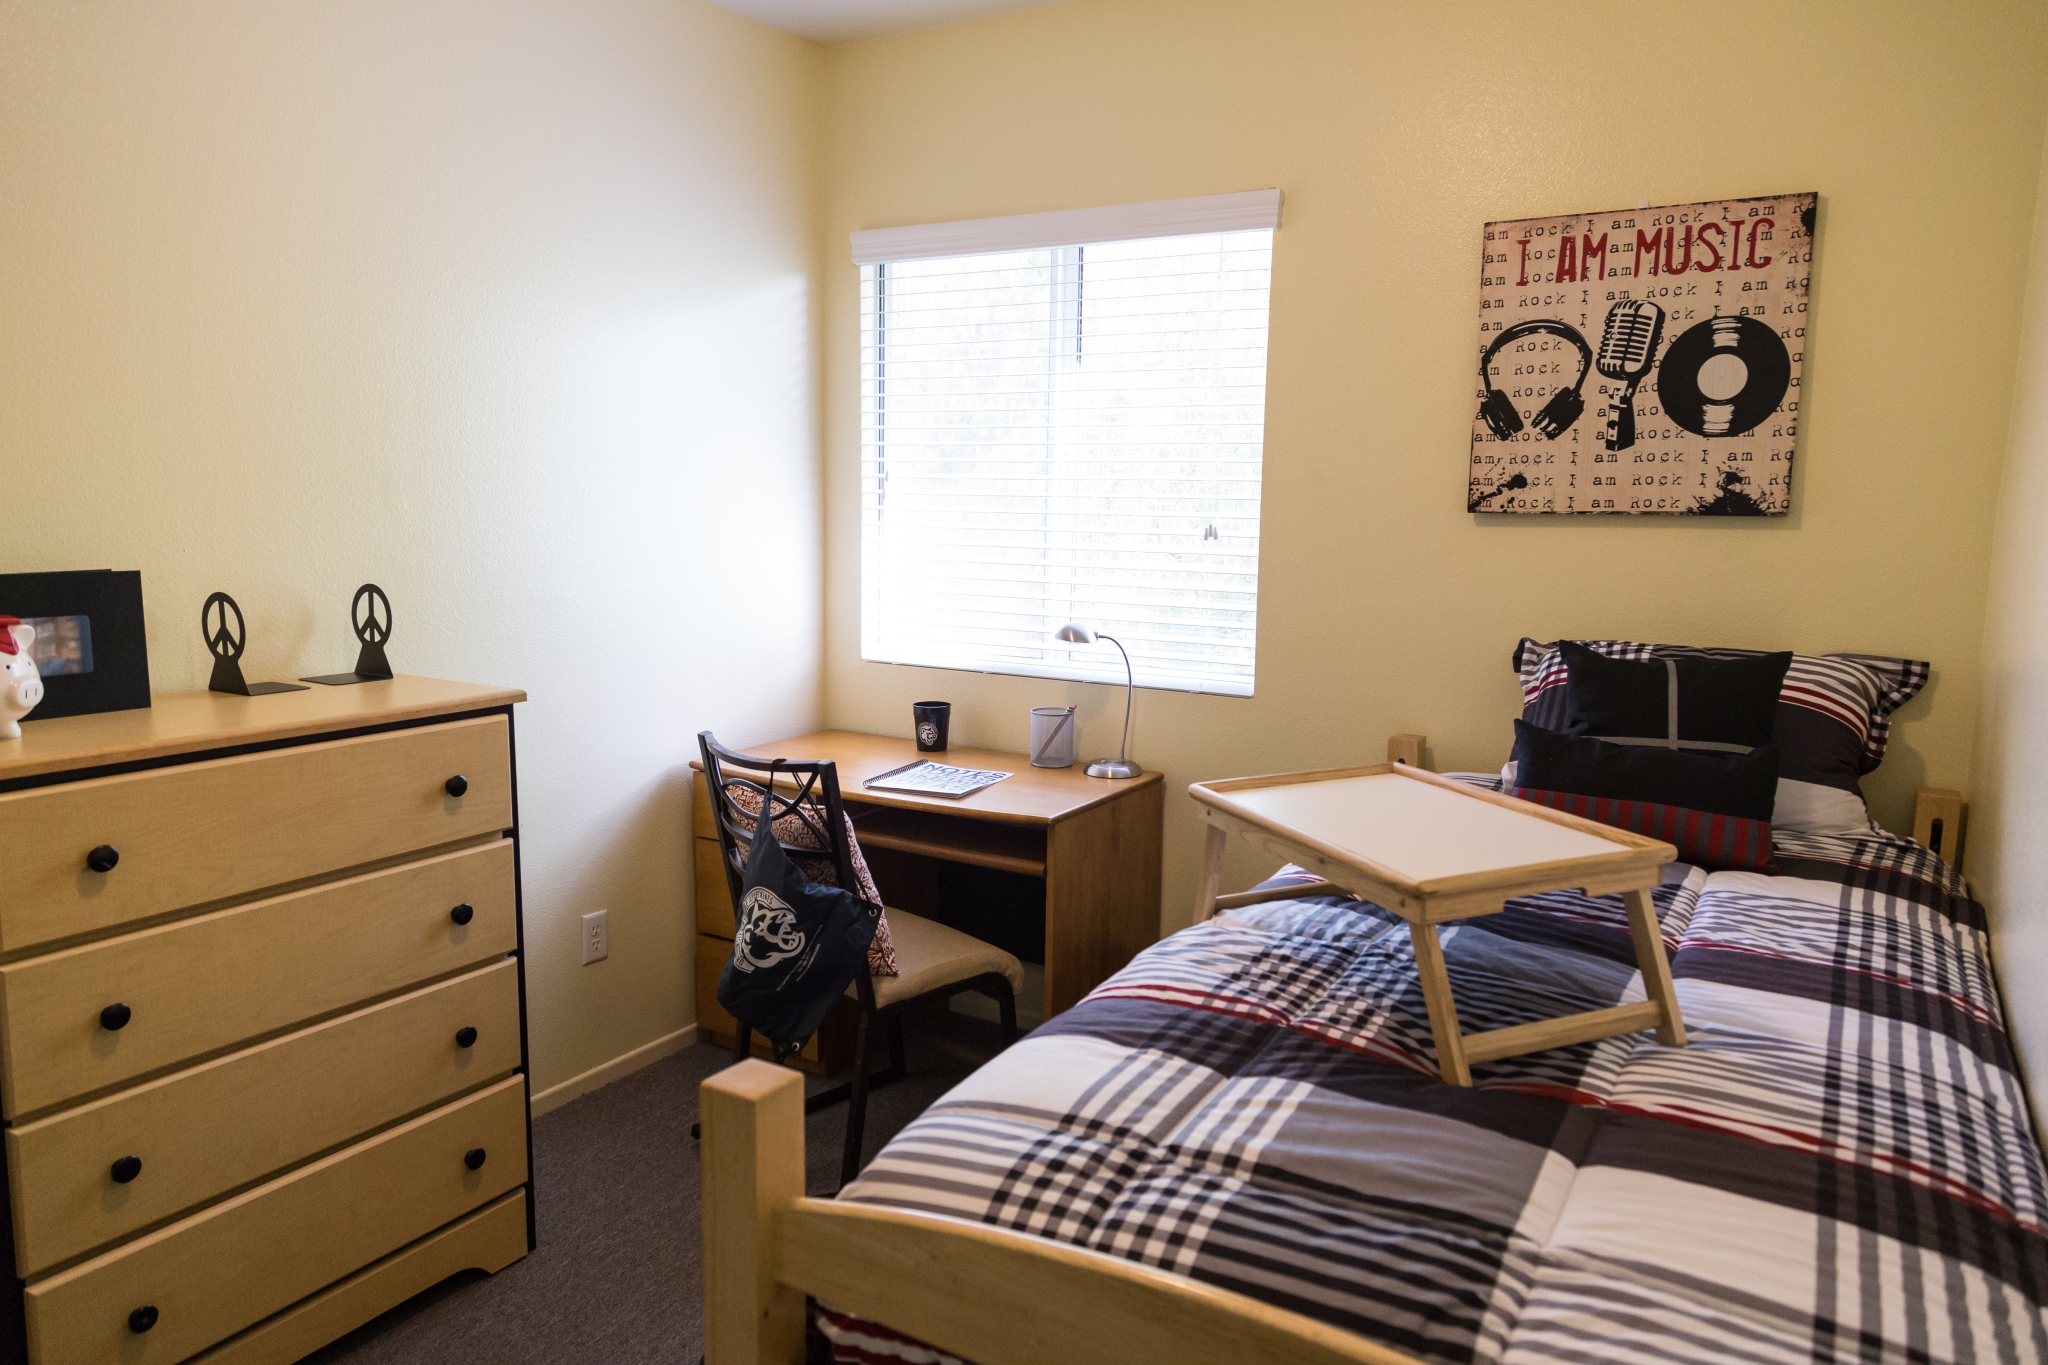 Interior view from the entry to a bedroom. There is a single bed along the right wall, desk under the mini-blink covered window and a dresser along the wall on the left.